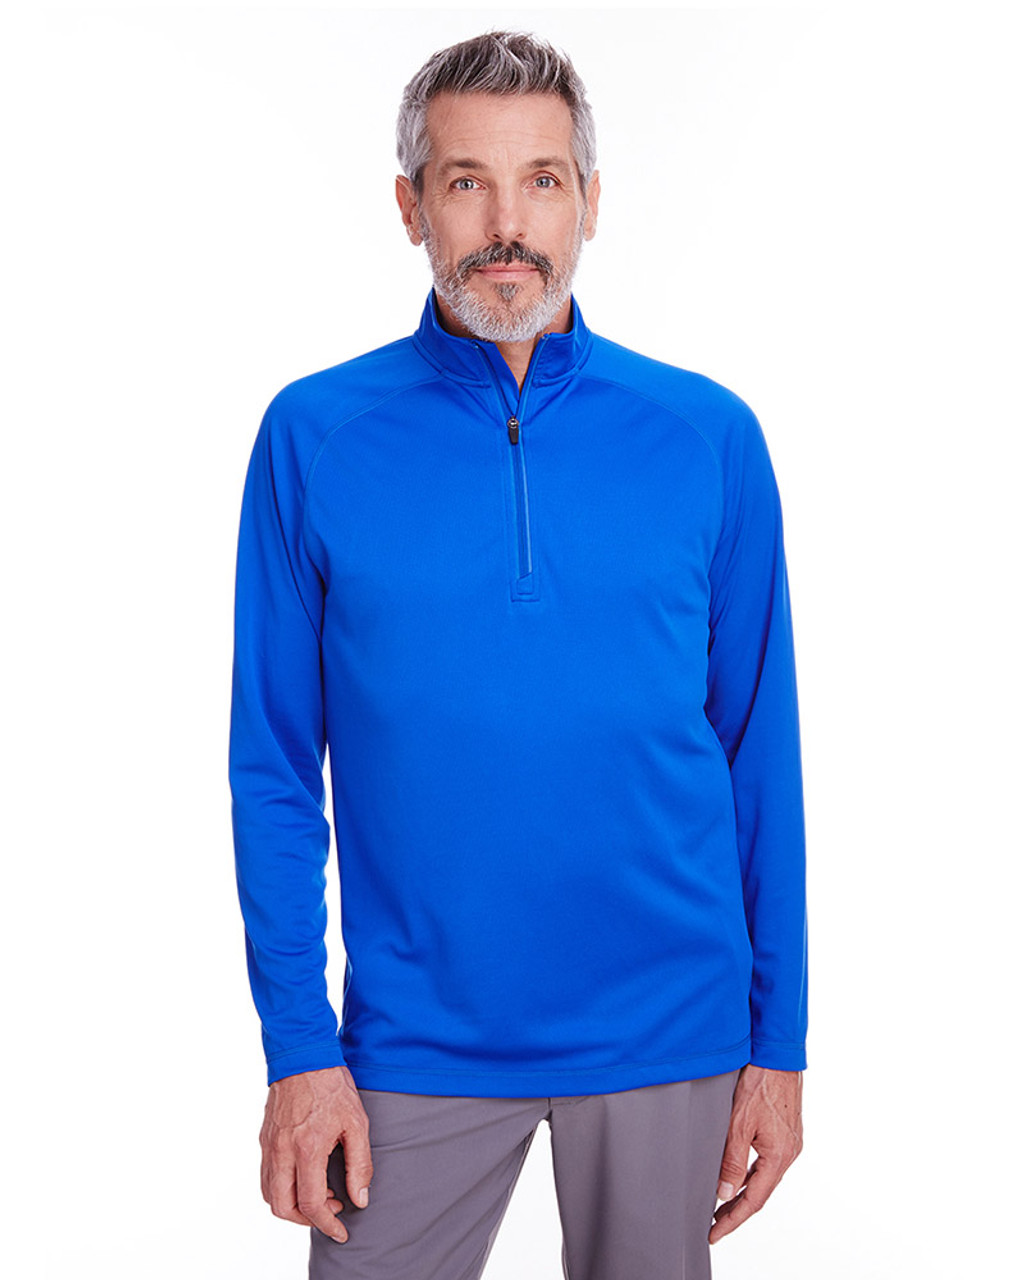 Royal - S16797 Spyder Men's Freestyle Half-Zip Pullover Sweatshirt | Blankclothing.ca